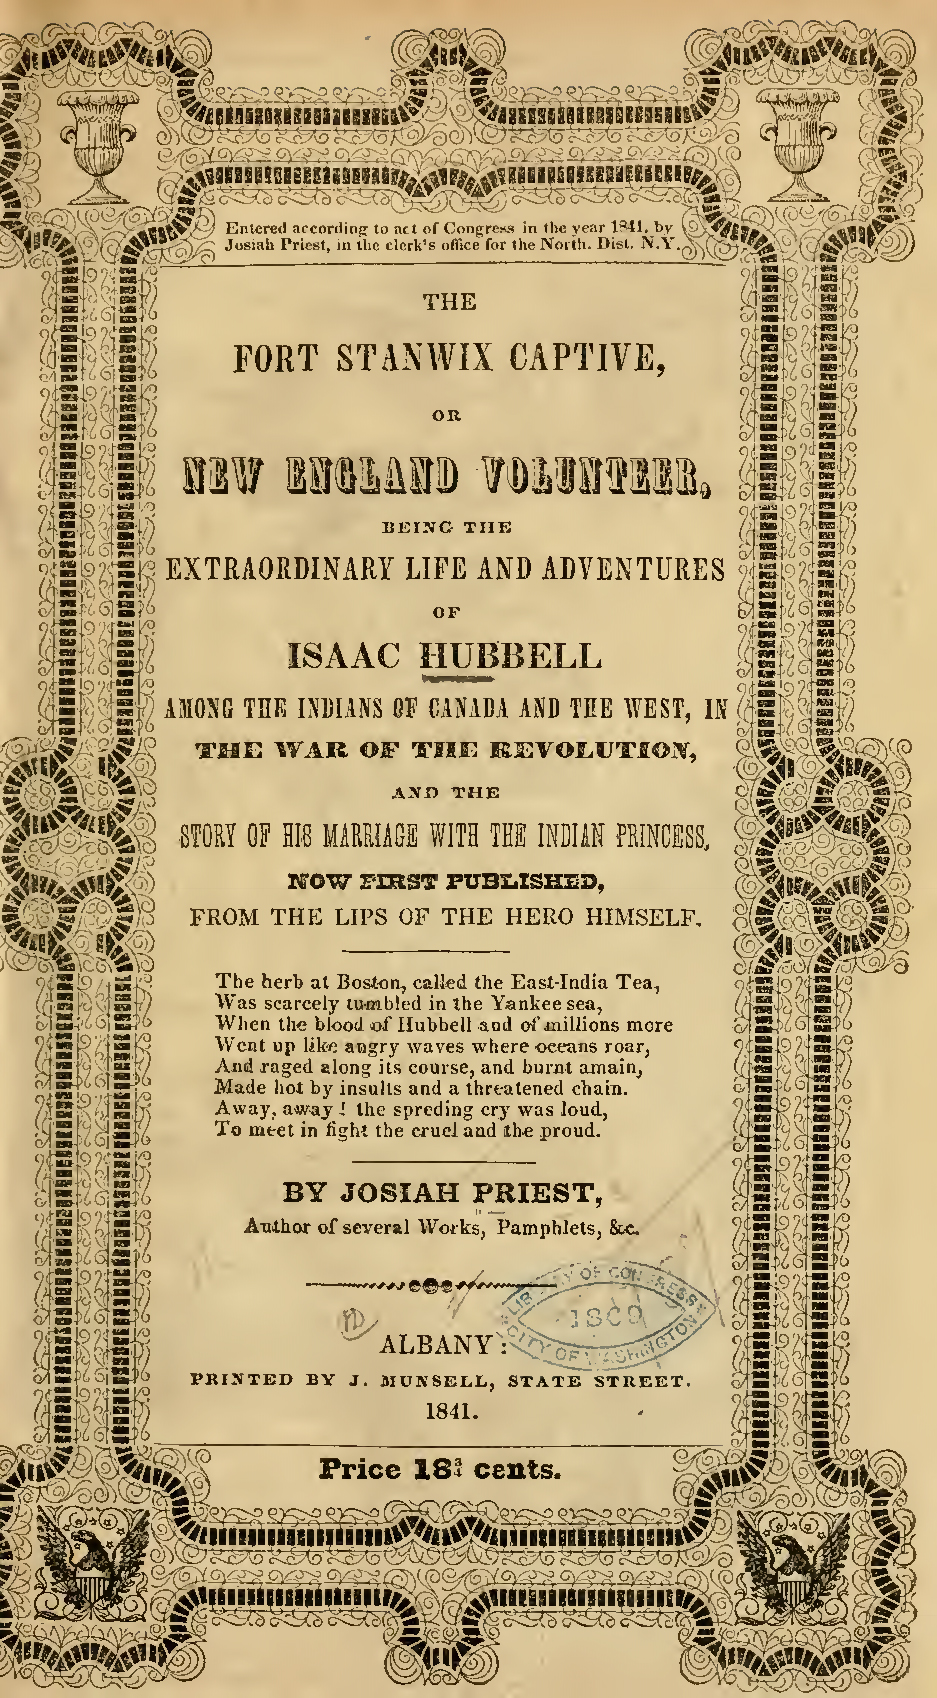 Issac Hubbell title page